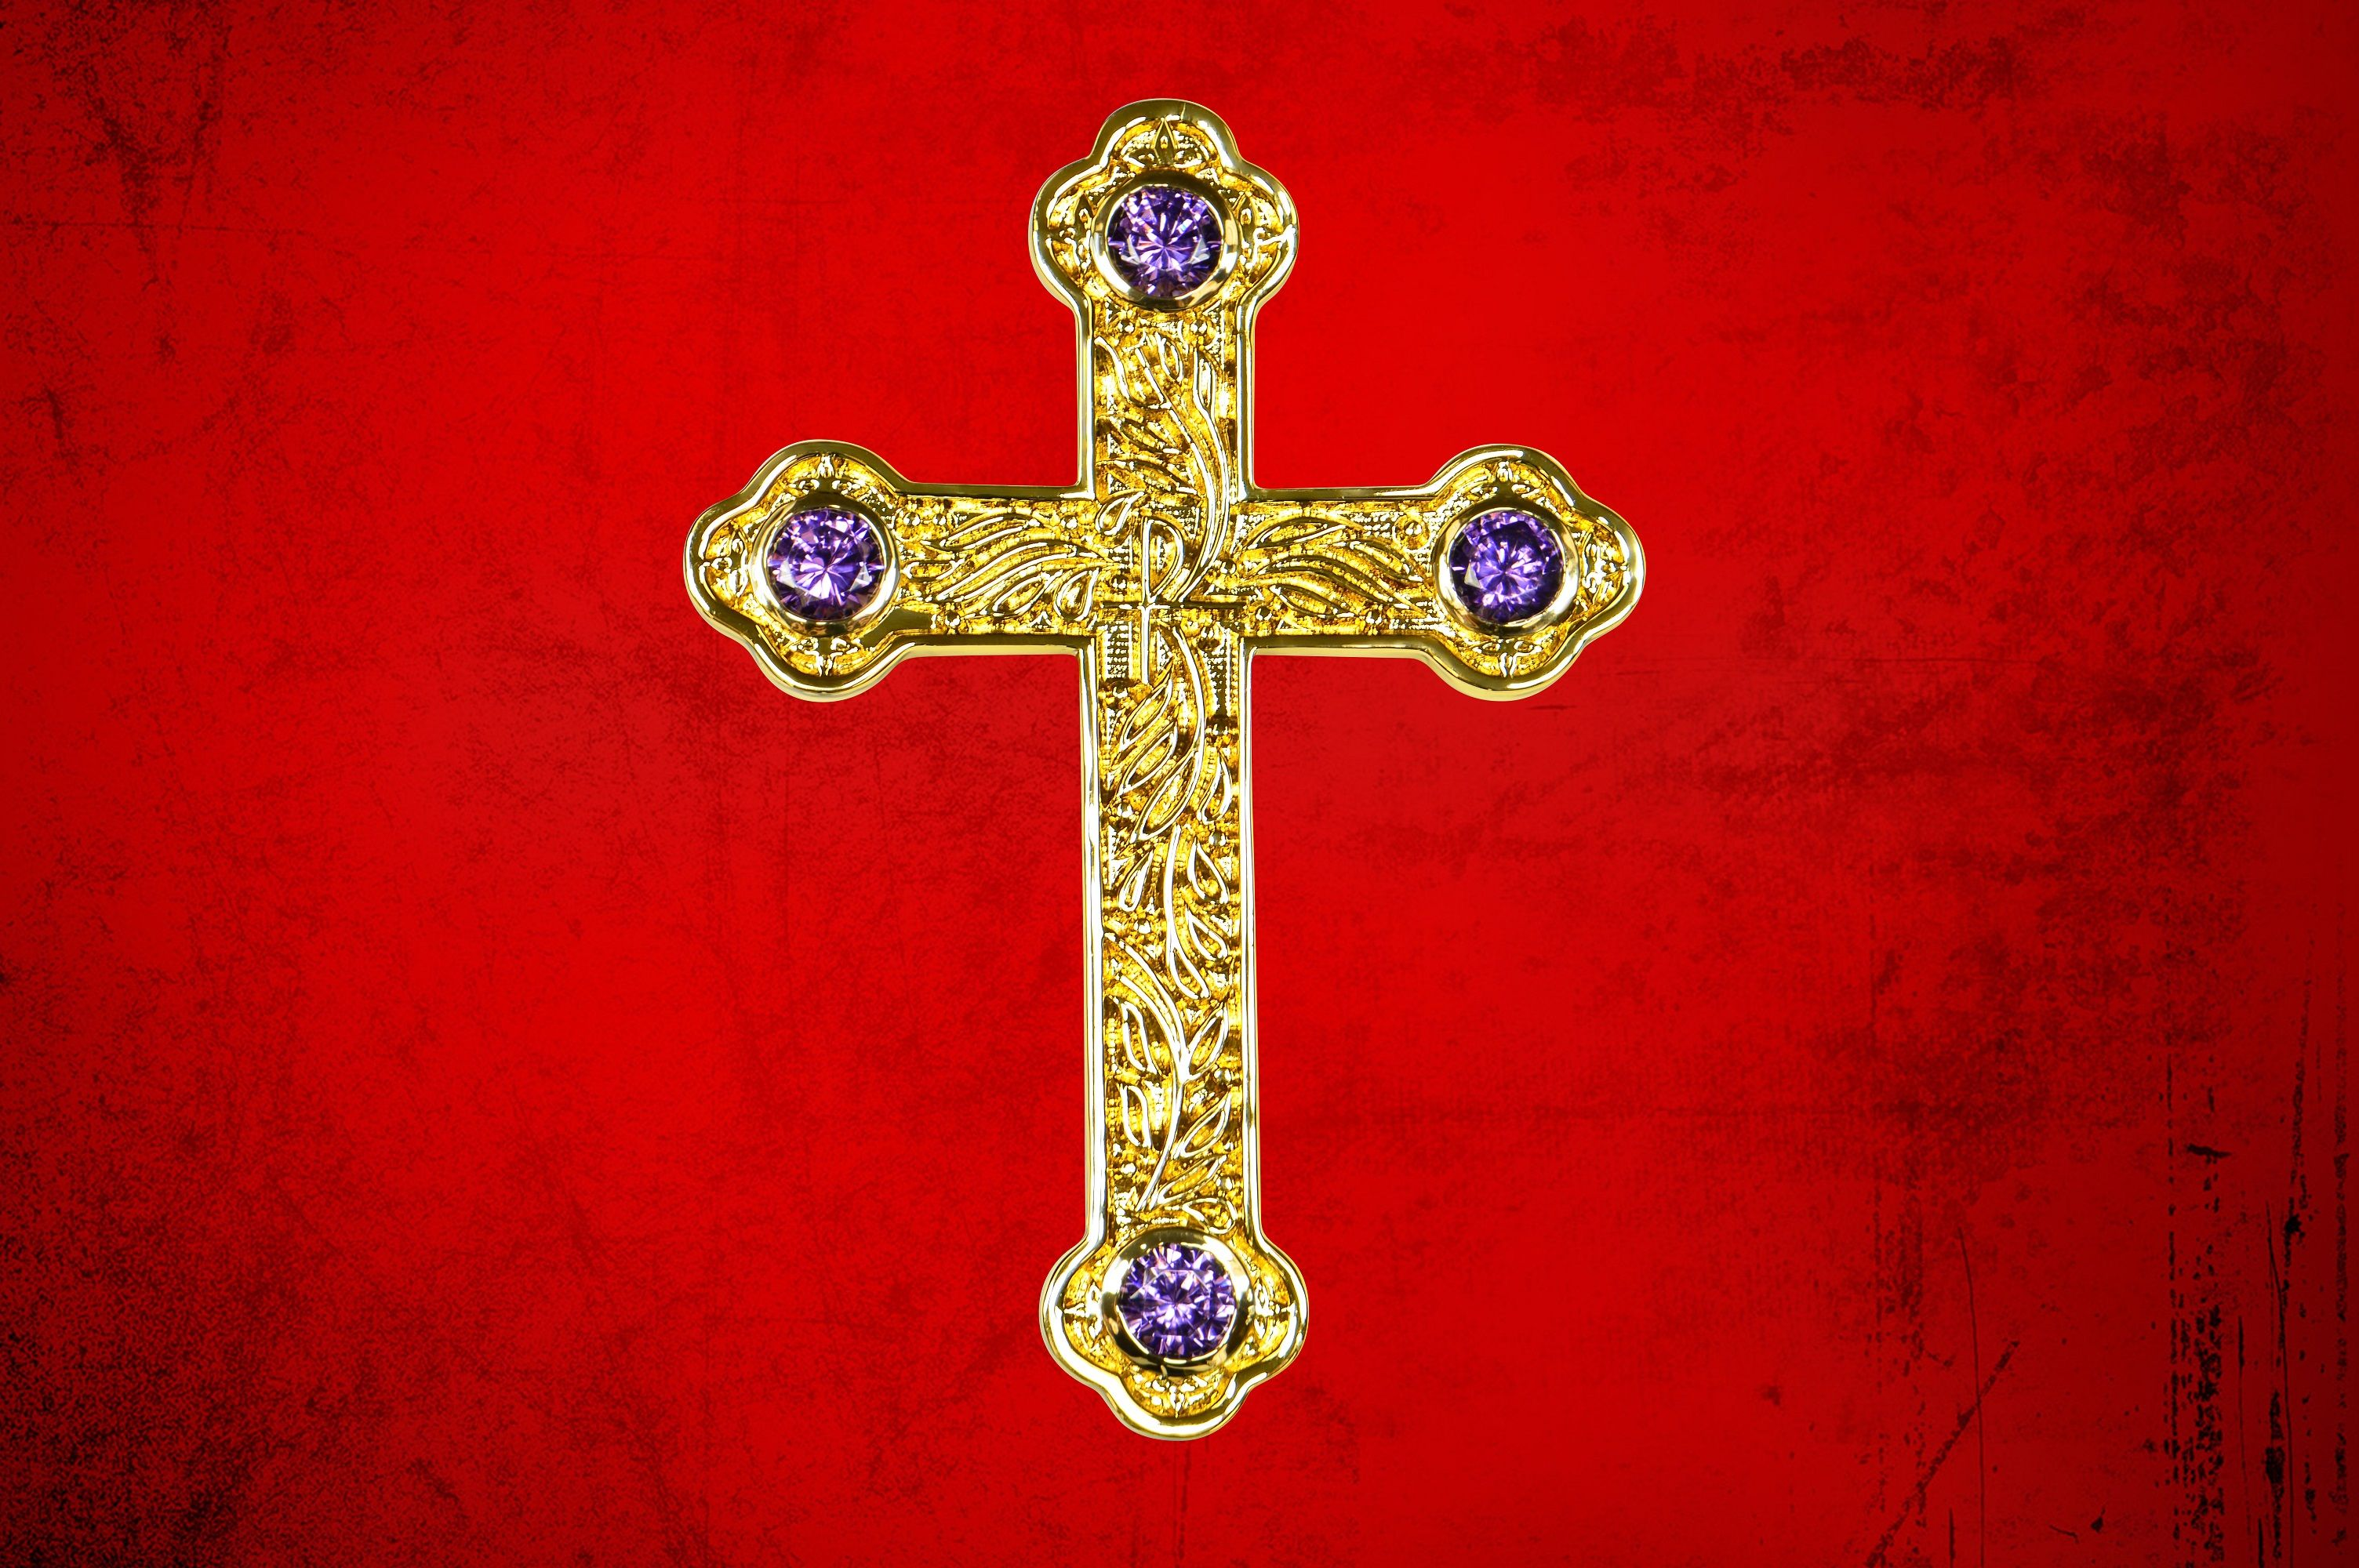 Bishop's Pectoral Cross in Gold with Purple Amethyst Stones